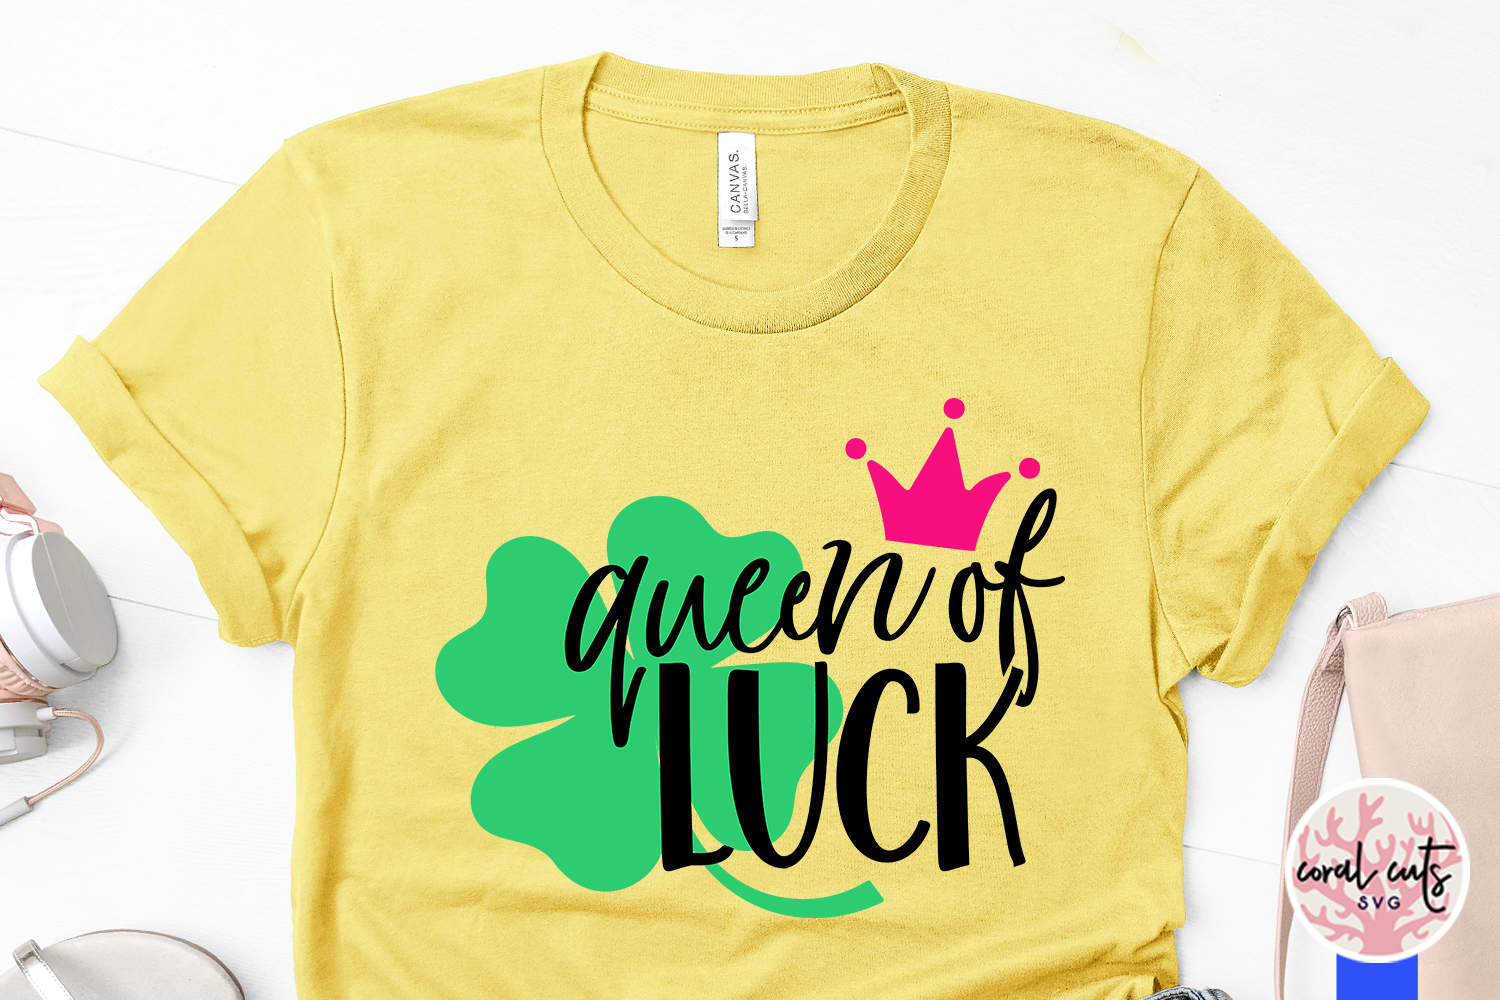 Queen of luck - St. Patrick's Day SVG EPS DXF PNG example image 3